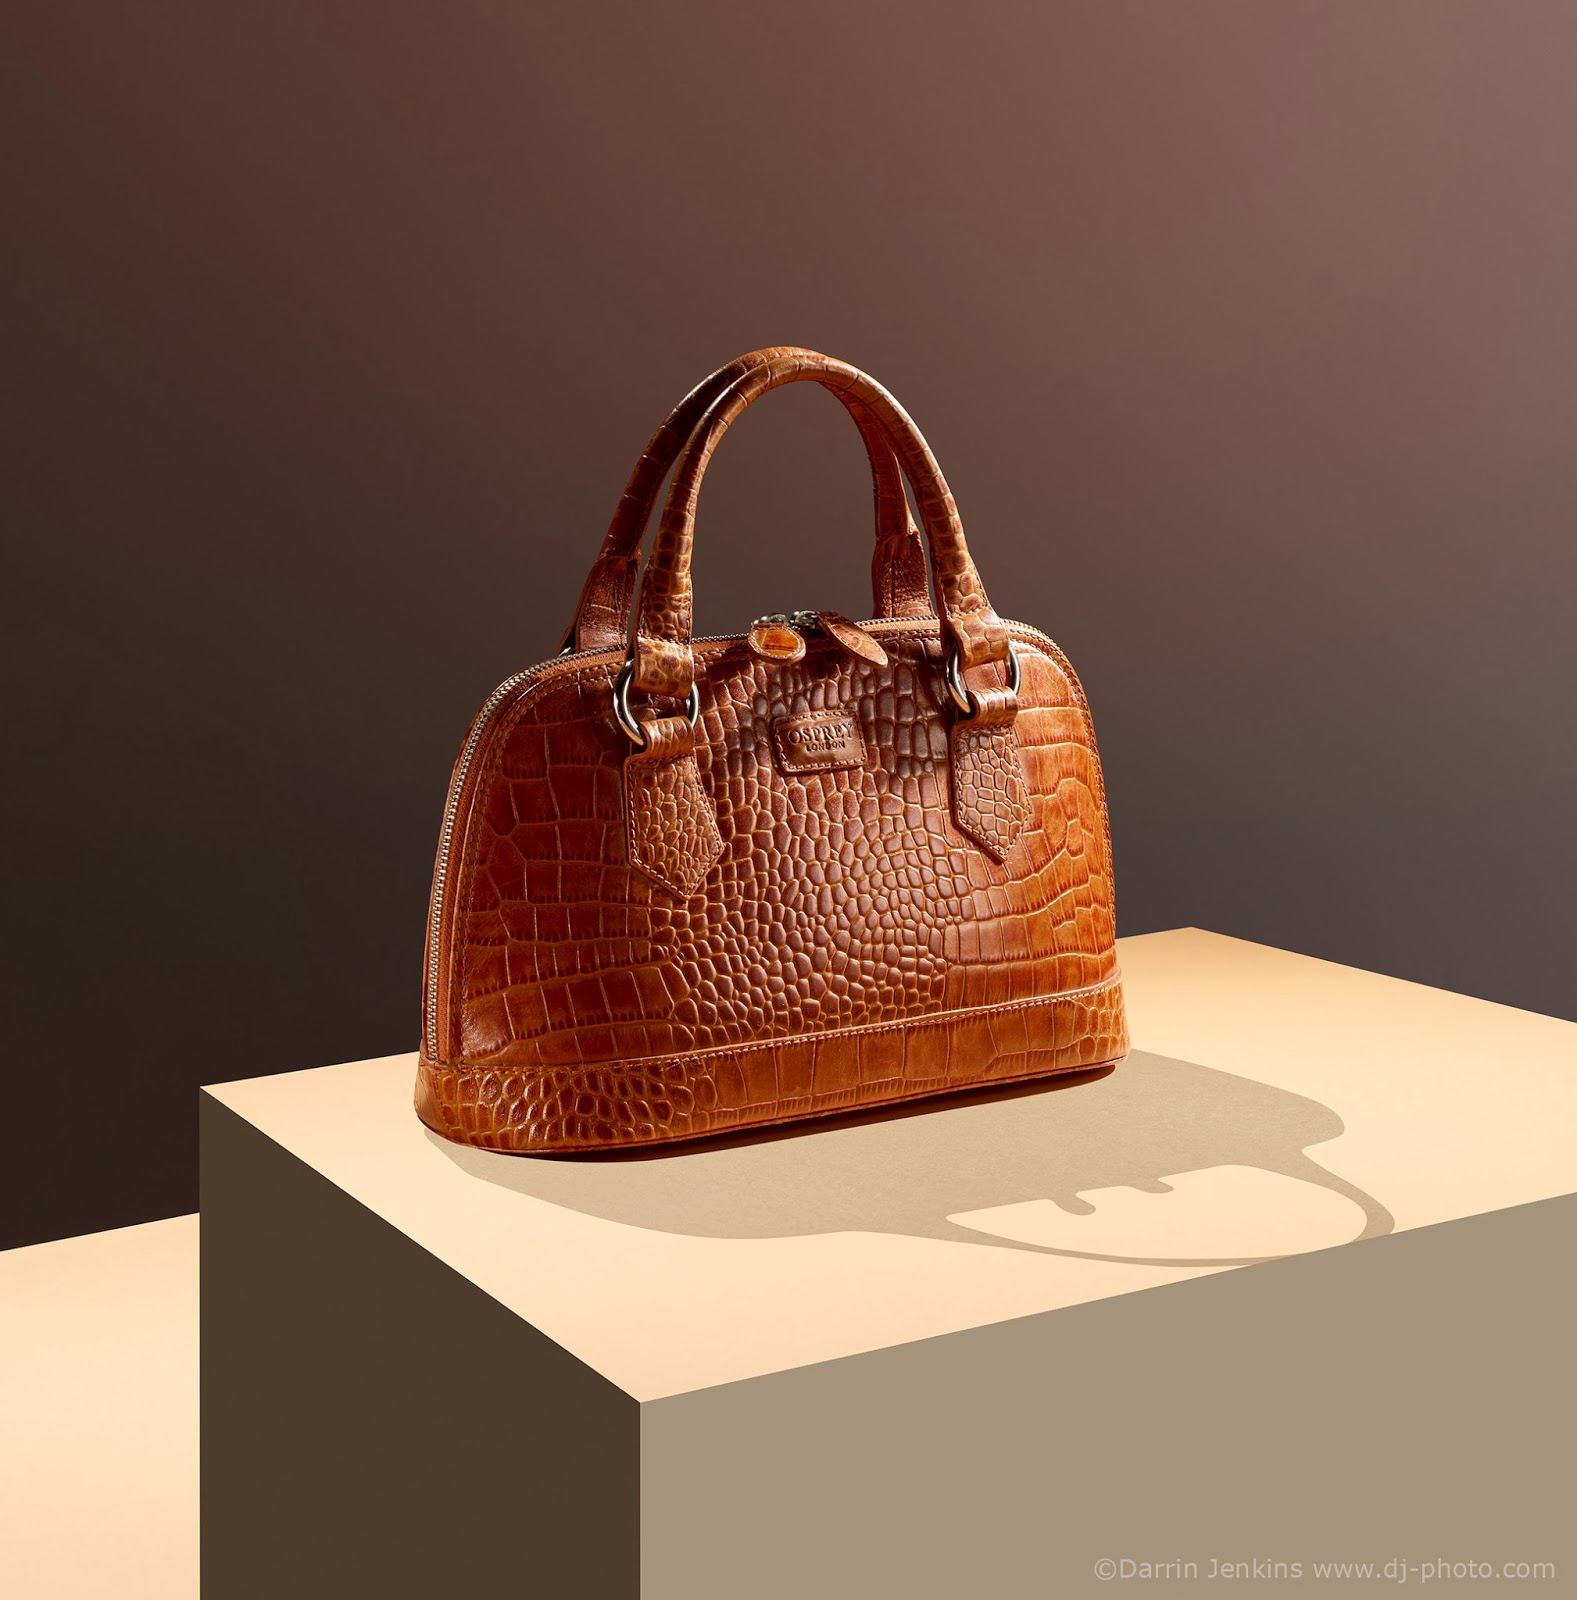 Product photograph of a high quality luxary Osprey handbag